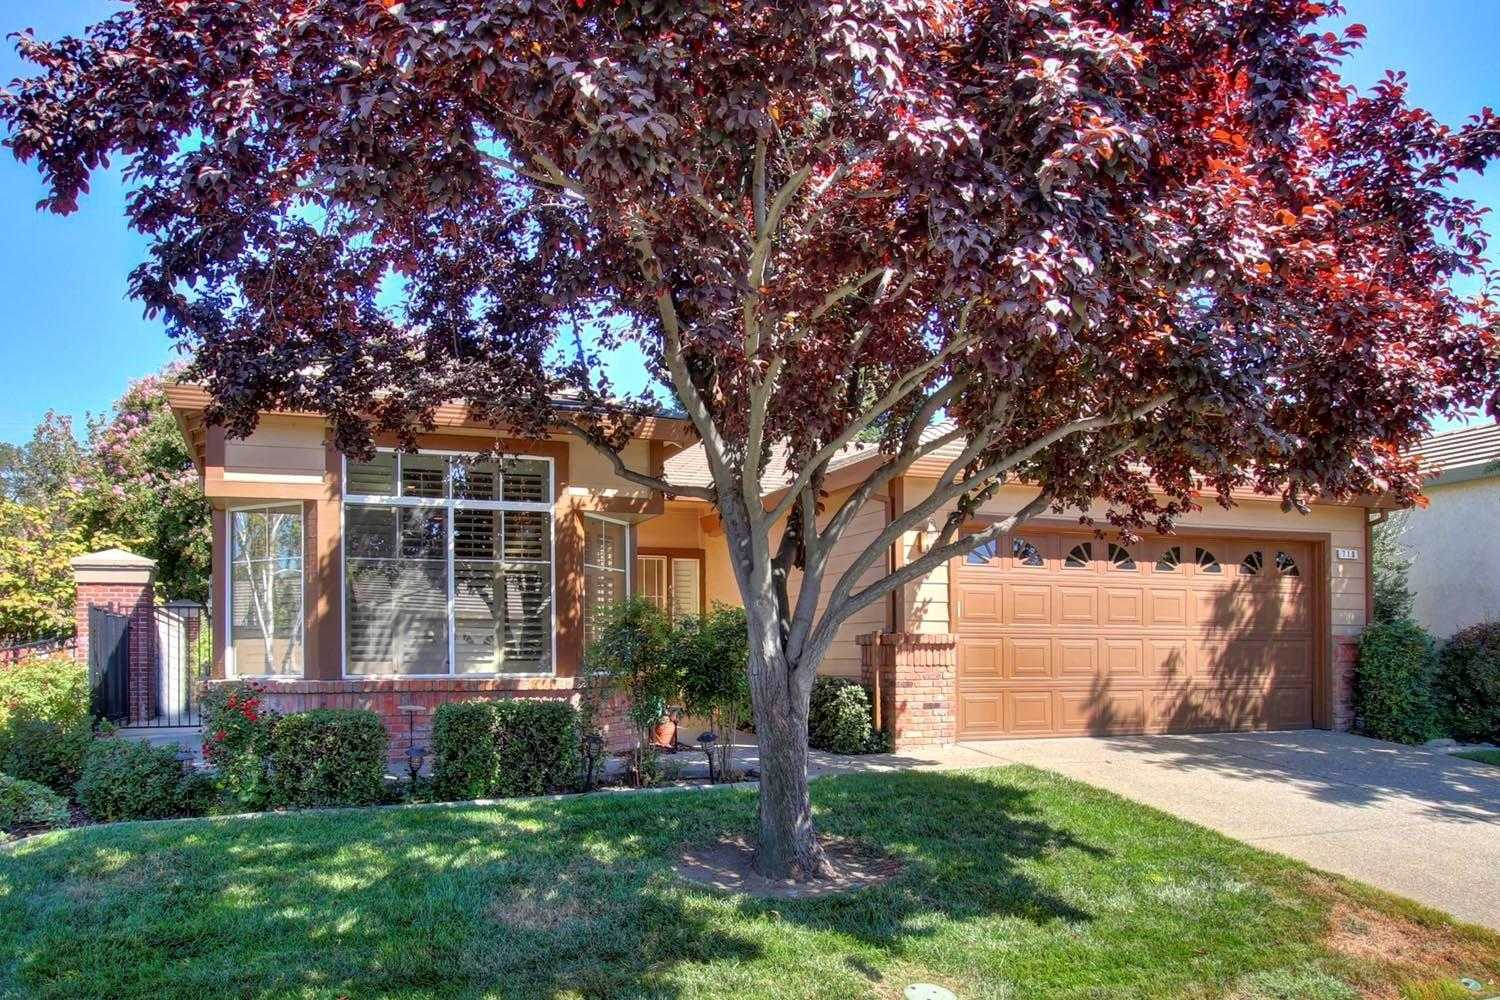 $459,900 - 2Br/2Ba -  for Sale in Diamond Glen, Folsom